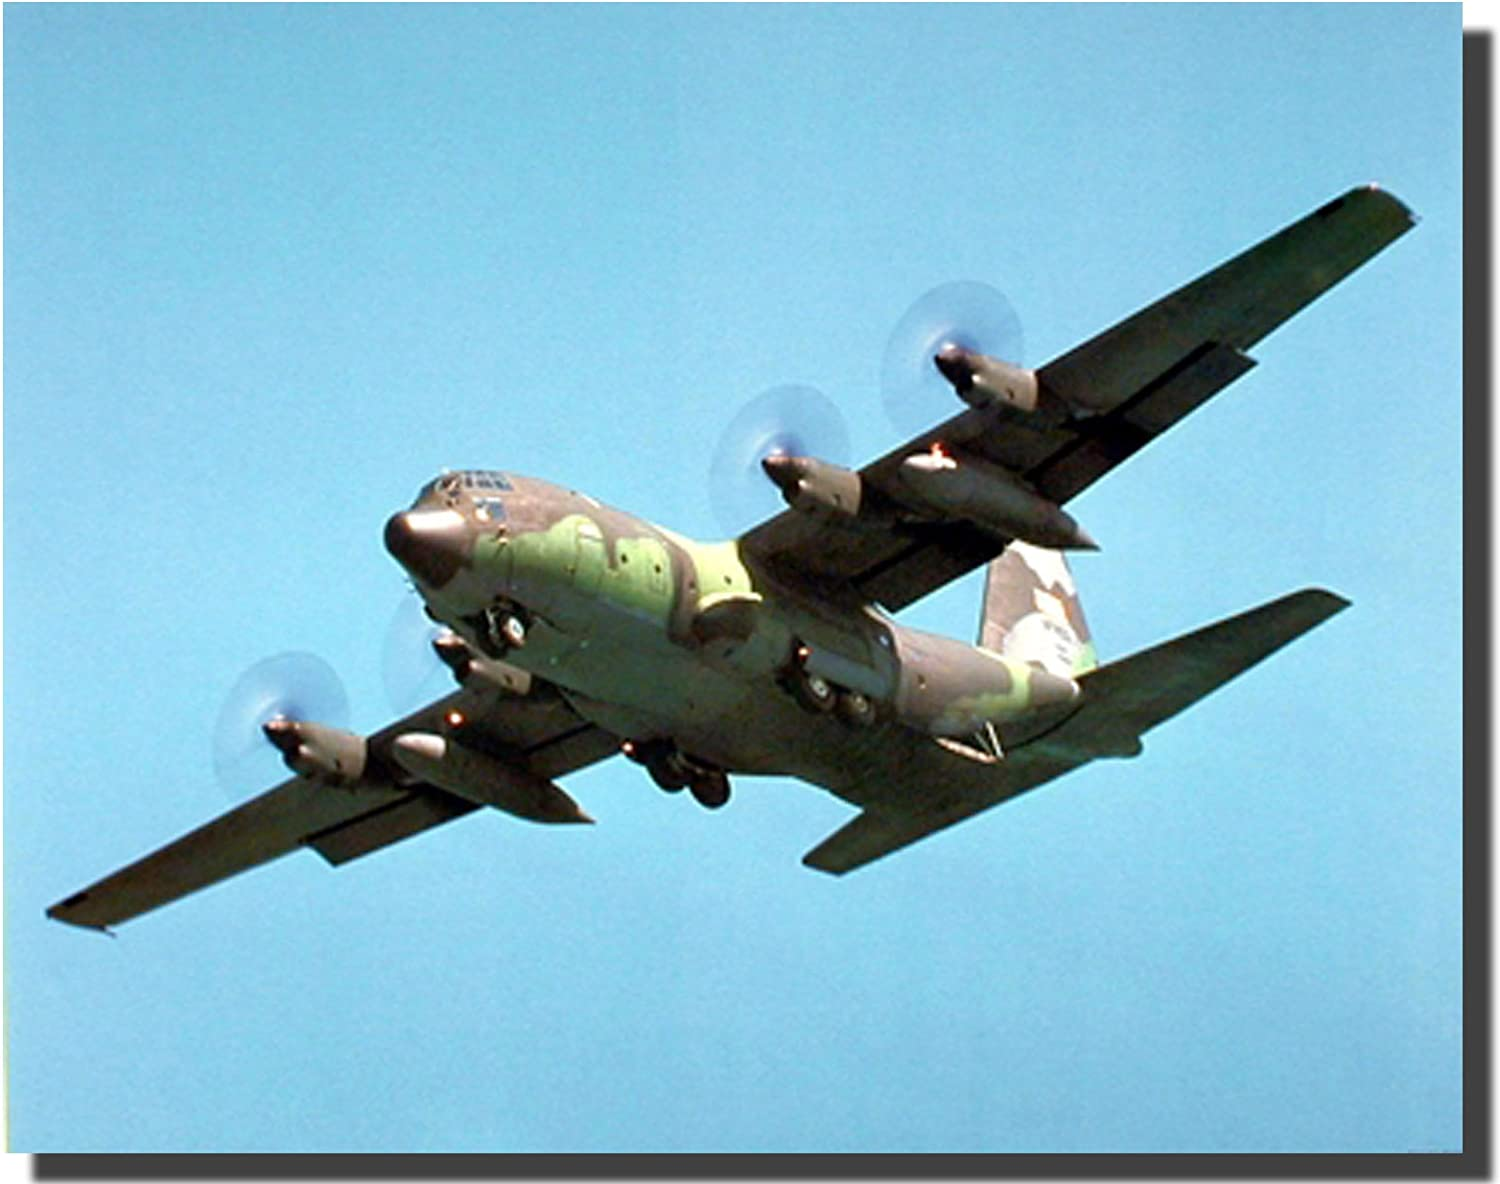 Military C-130 Cargo Airplane Aviation Aircraft Wall Decor Art Print 16x20